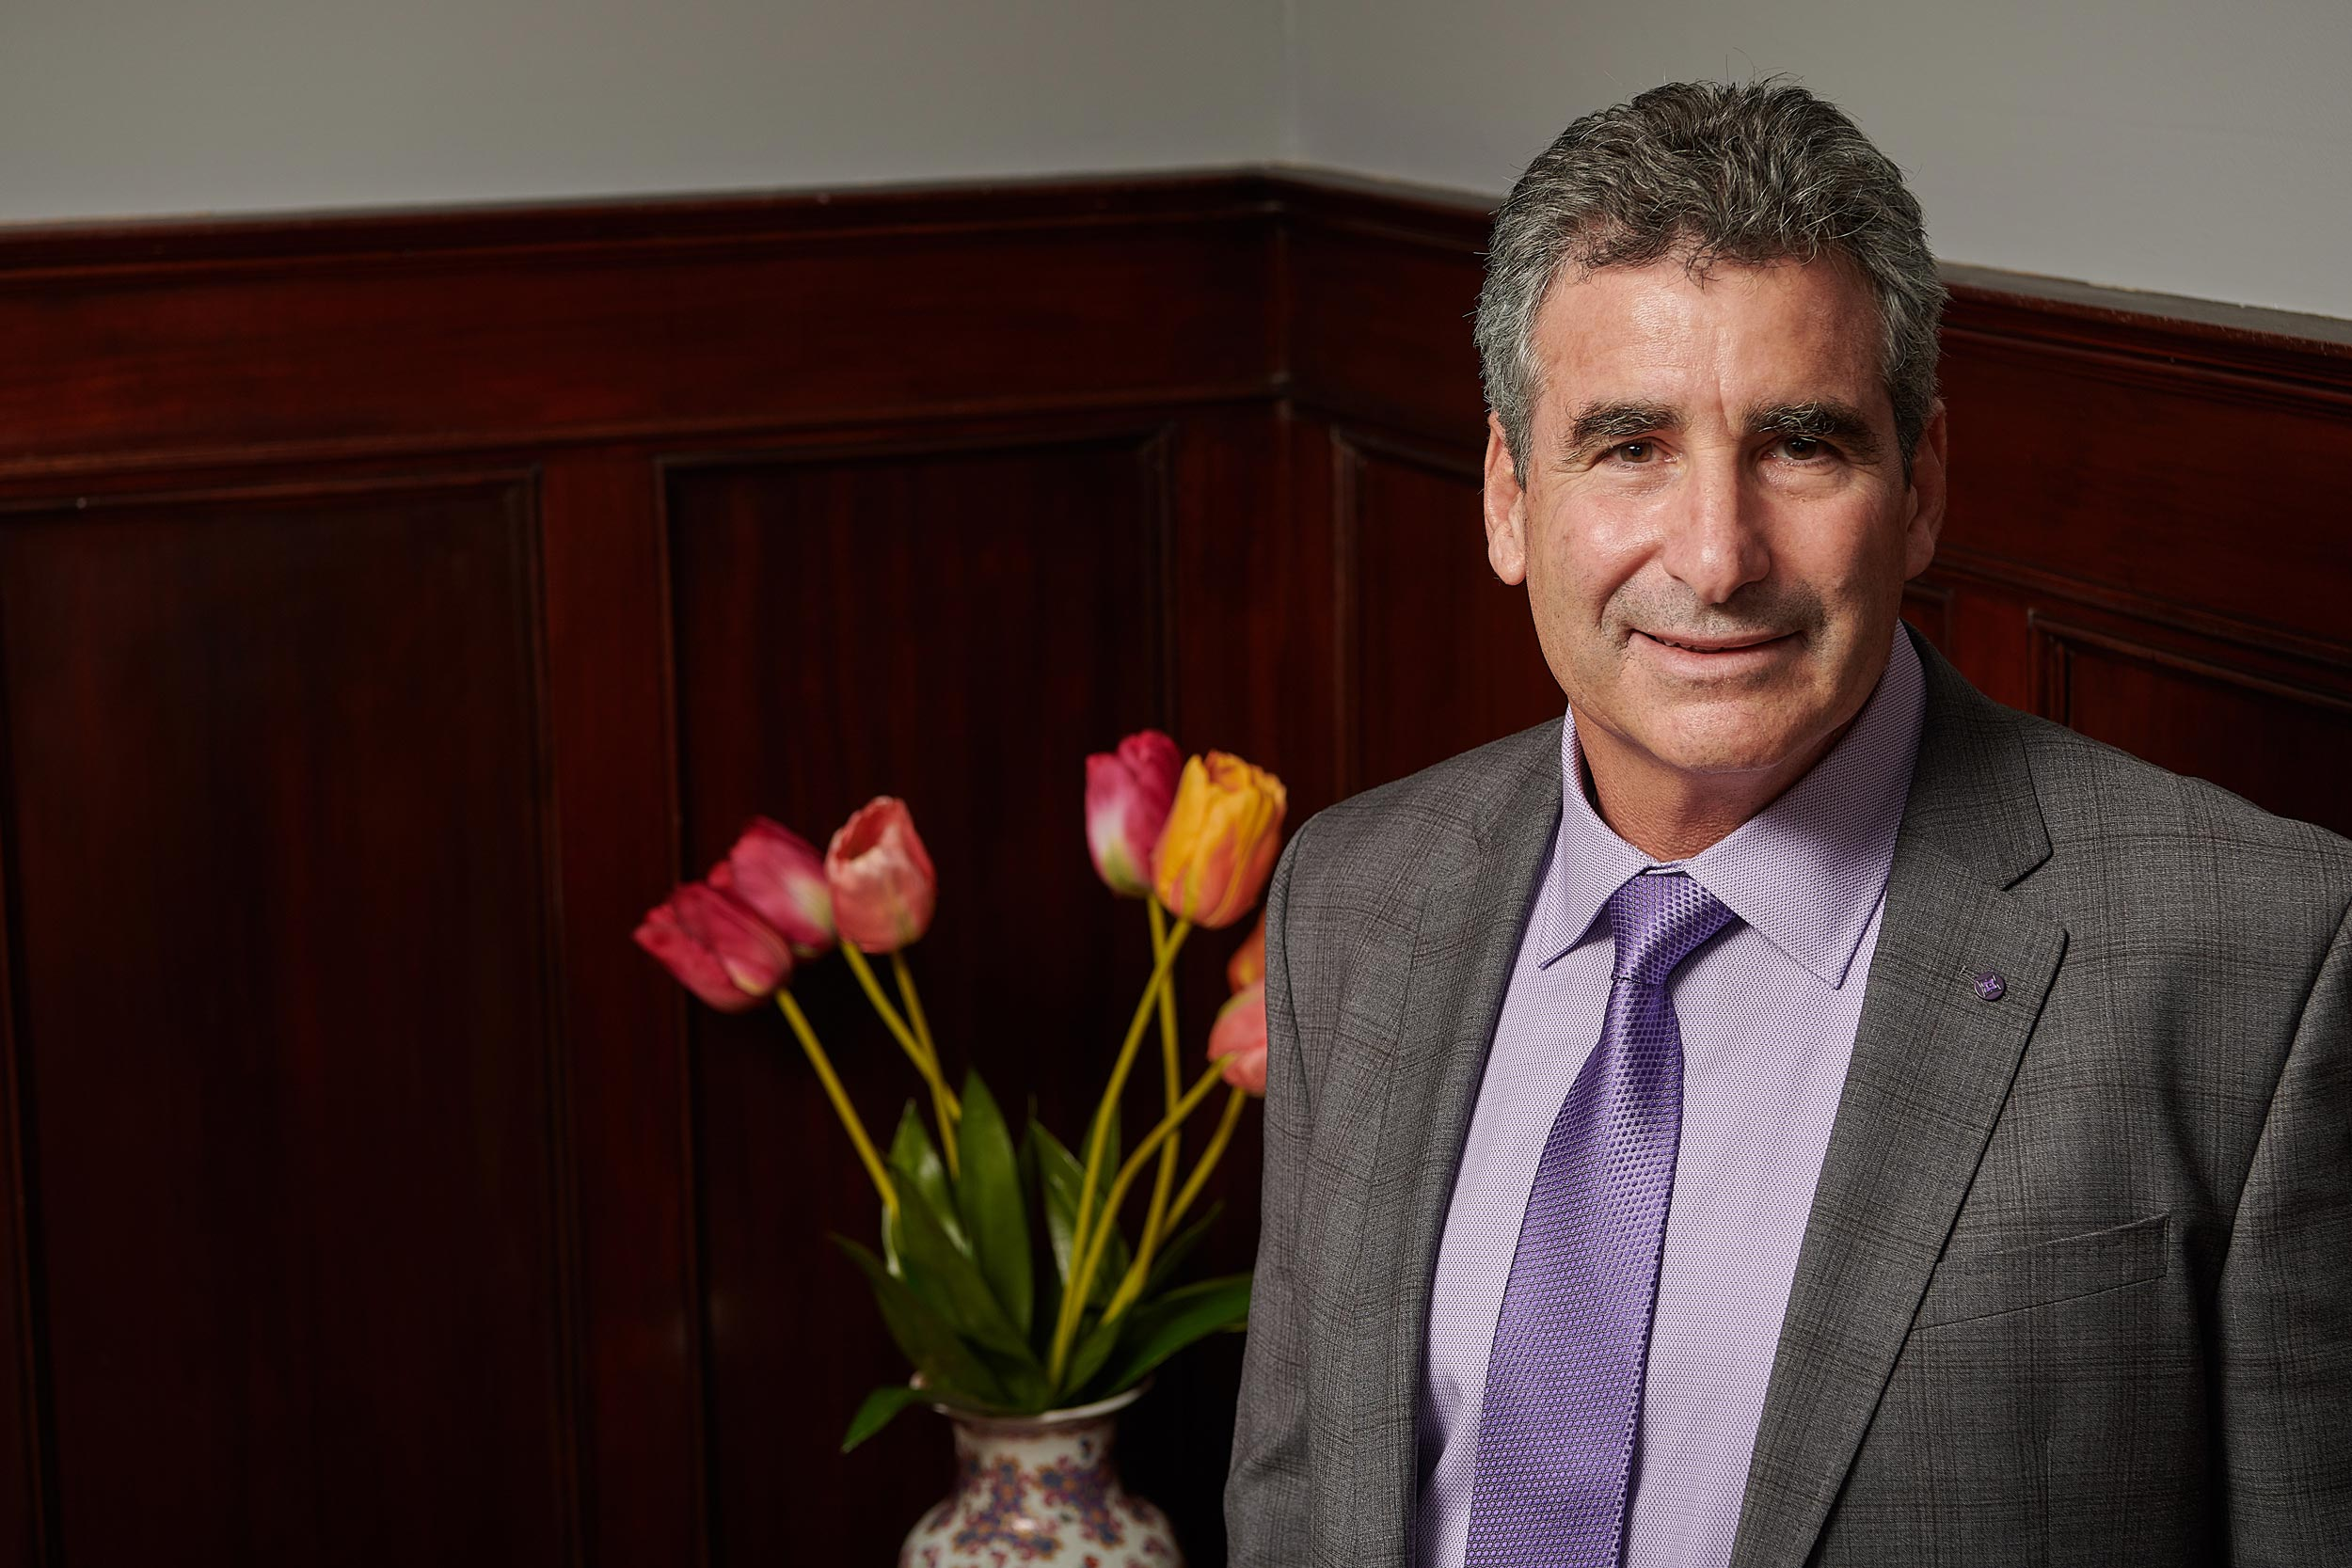 Tom Katsouleas has advocated for cross-disciplinary collaboration, faculty diversity and other key issues as provost.